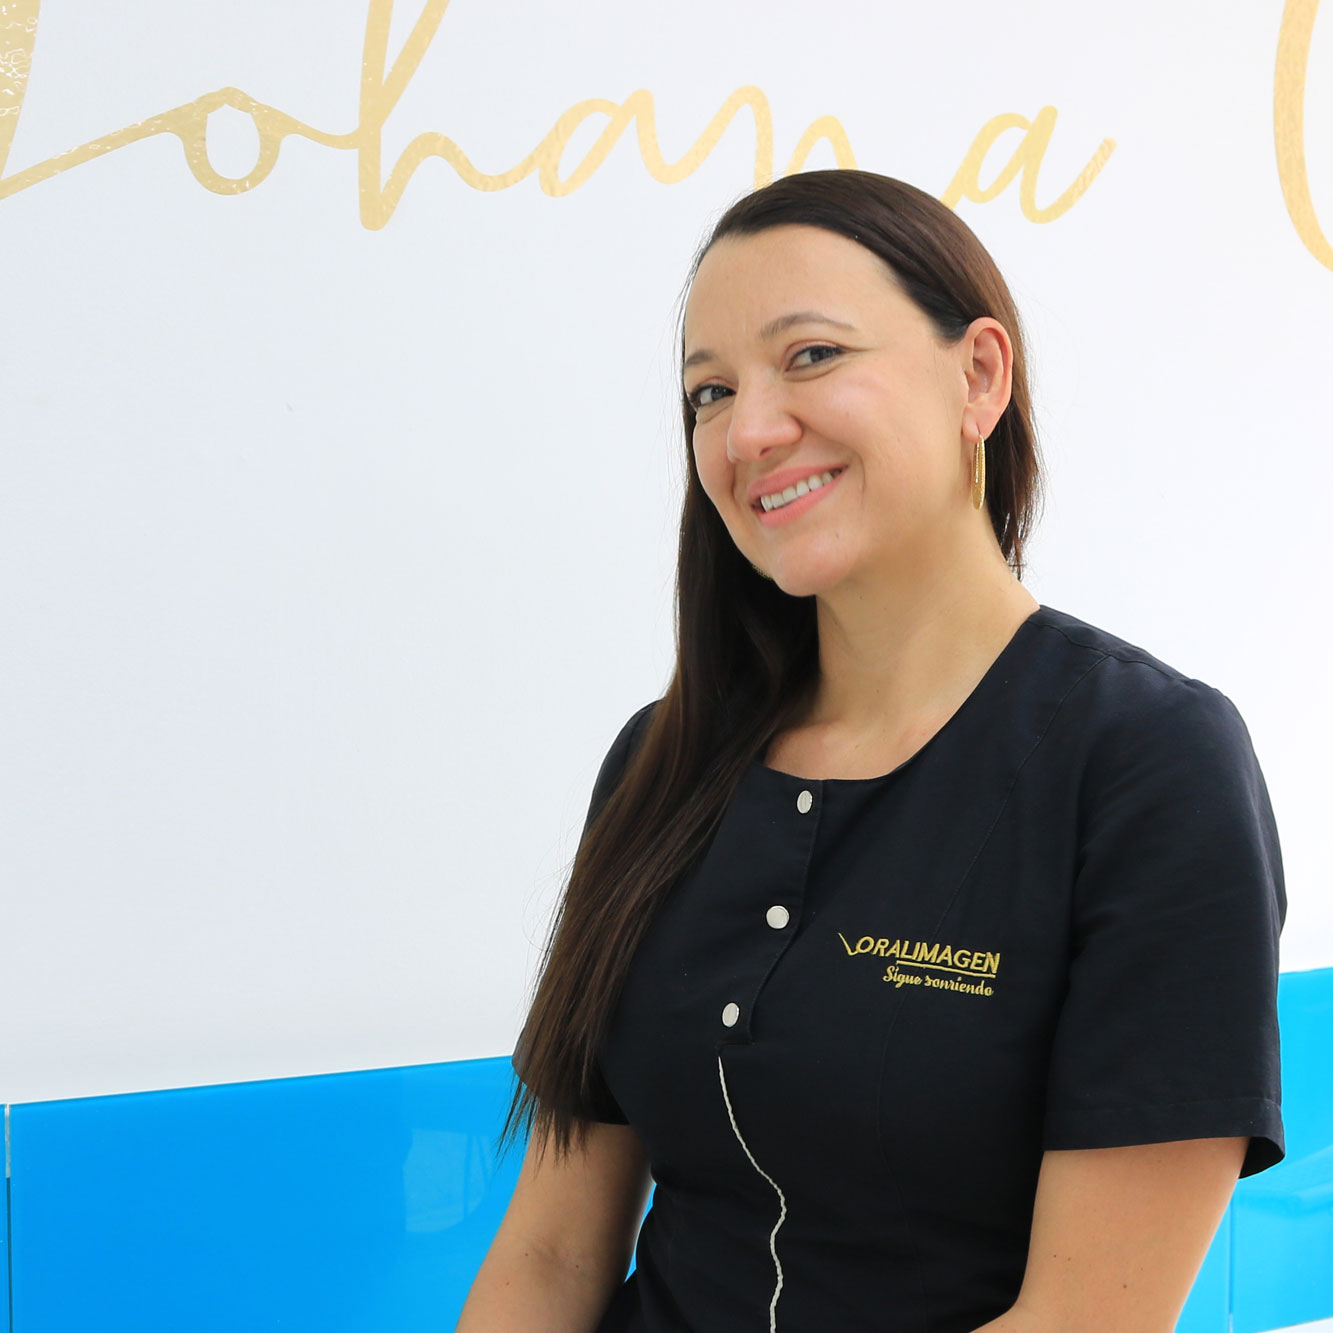 Dr. Johana Ossa - The Cost of Dental Work in Medellin, Colombia